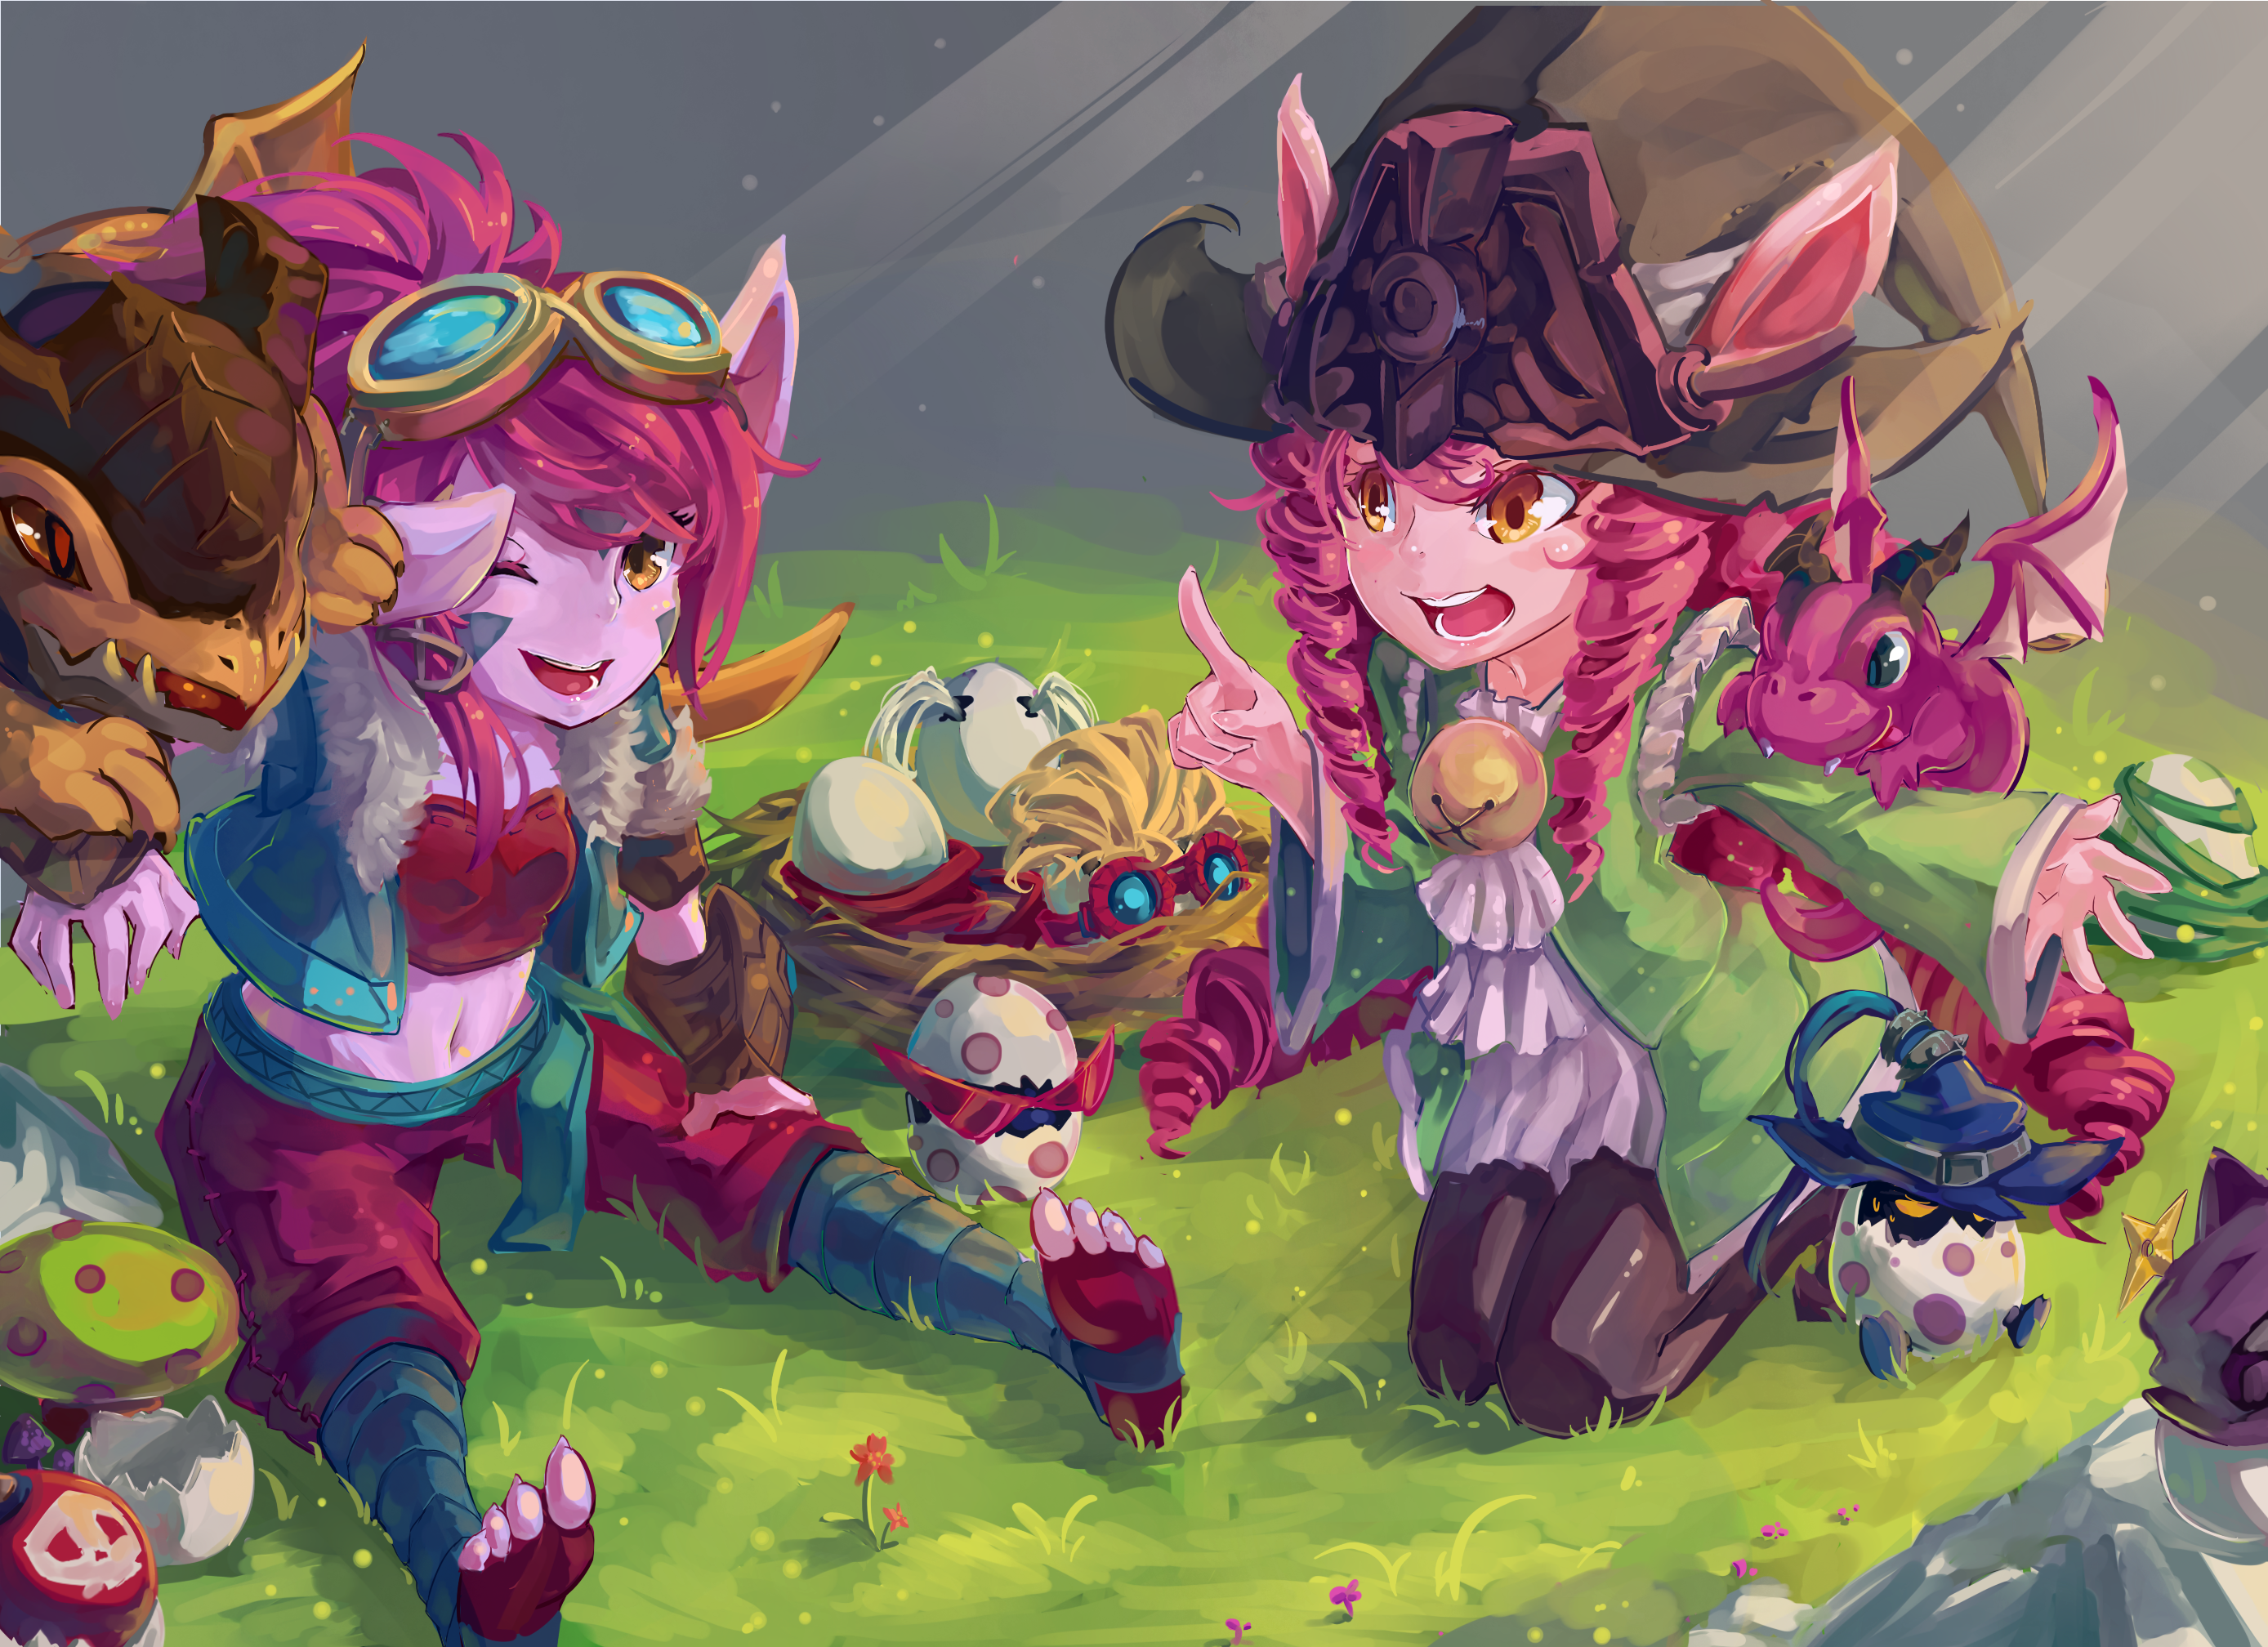 46 Tristana League Of Legends Hd Wallpapers Background Images Wallpaper Abyss